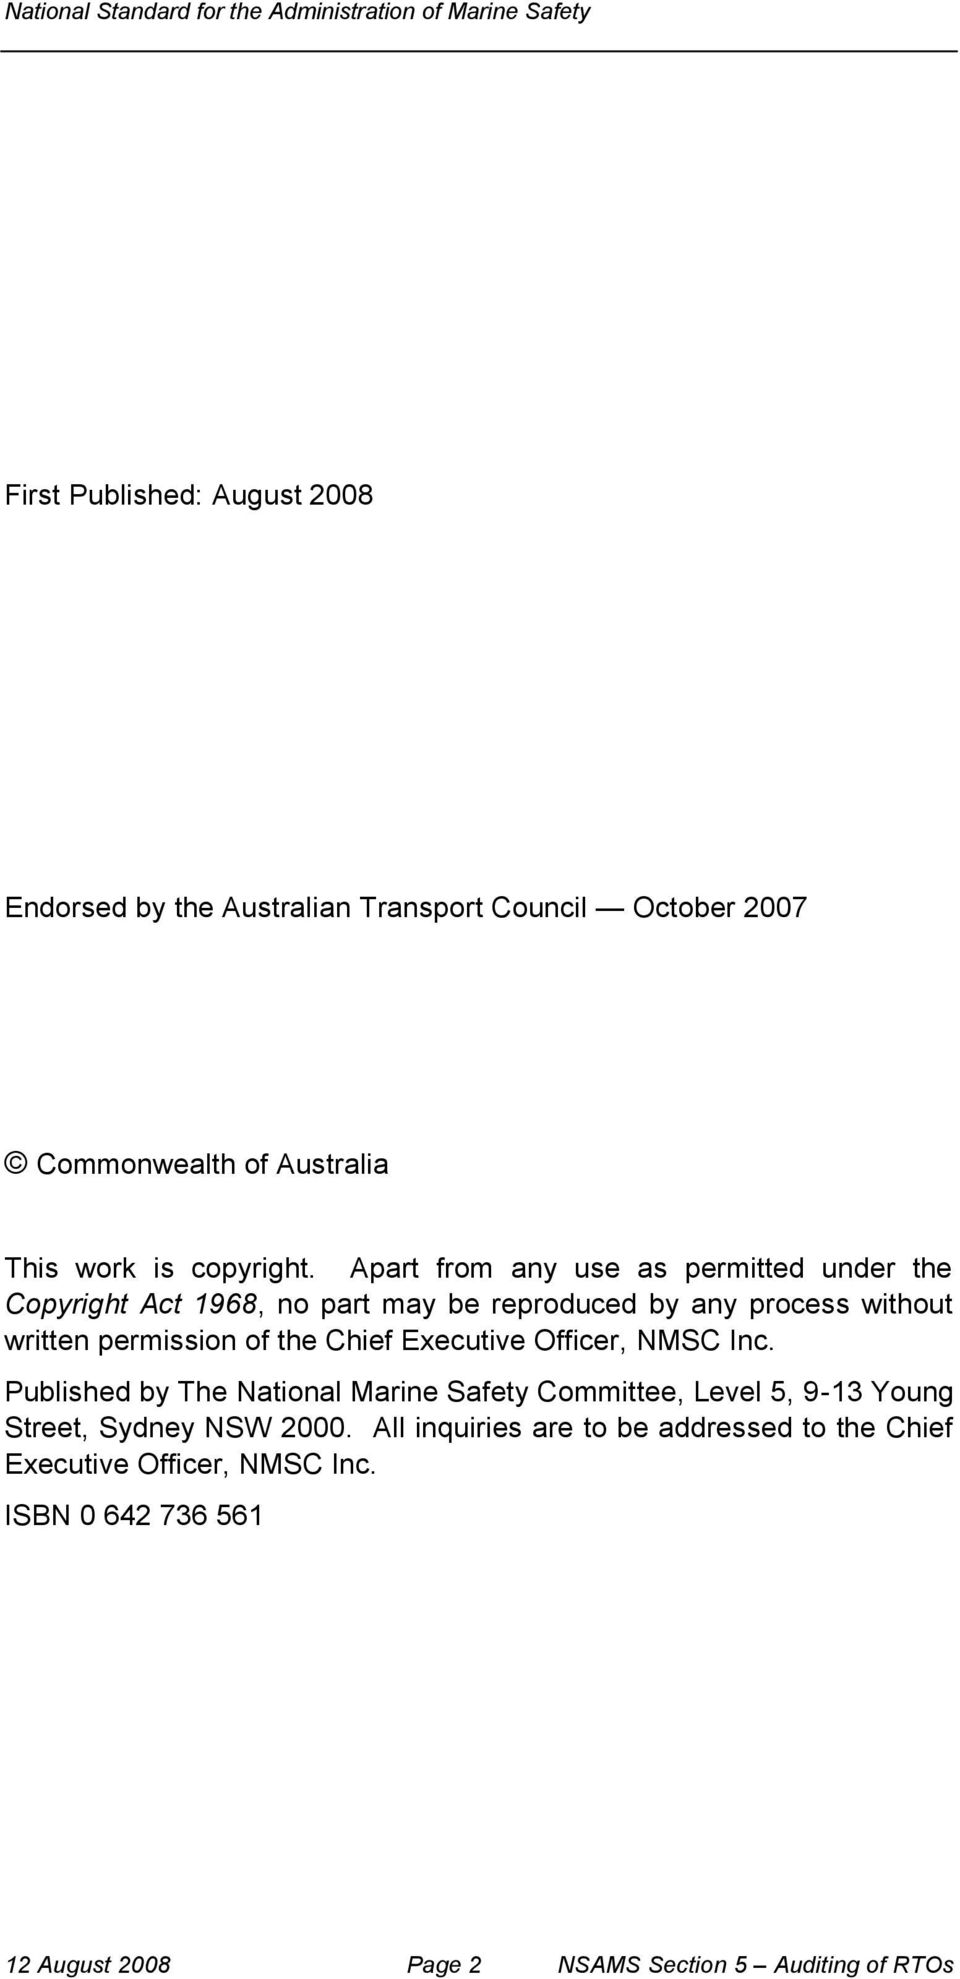 Chief Executive Officer, NMSC Inc. Published by The National Marine Safety Committee, Level 5, 9-13 Young Street, Sydney NSW 2000.